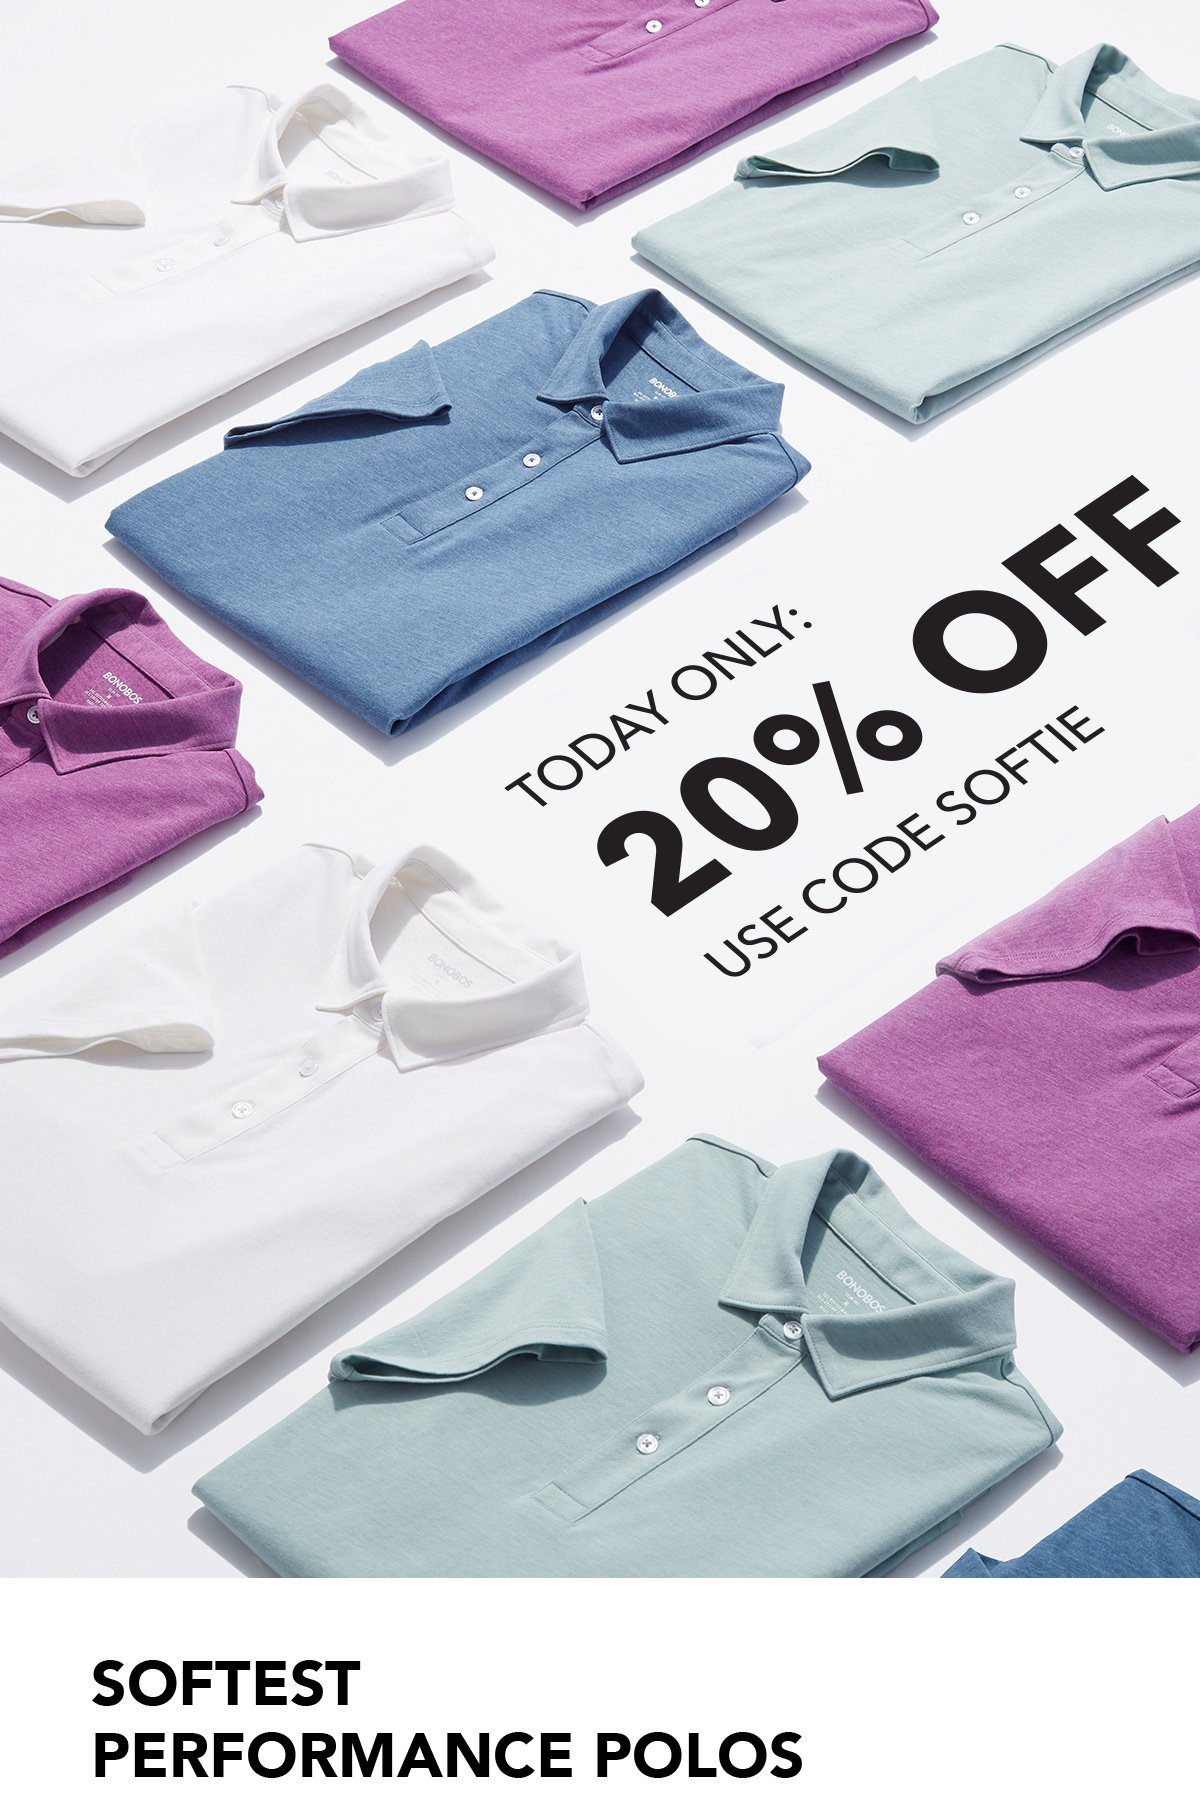 Today Only // Get 20% Off Softest Performance Polos // USE CODE SOFTIE